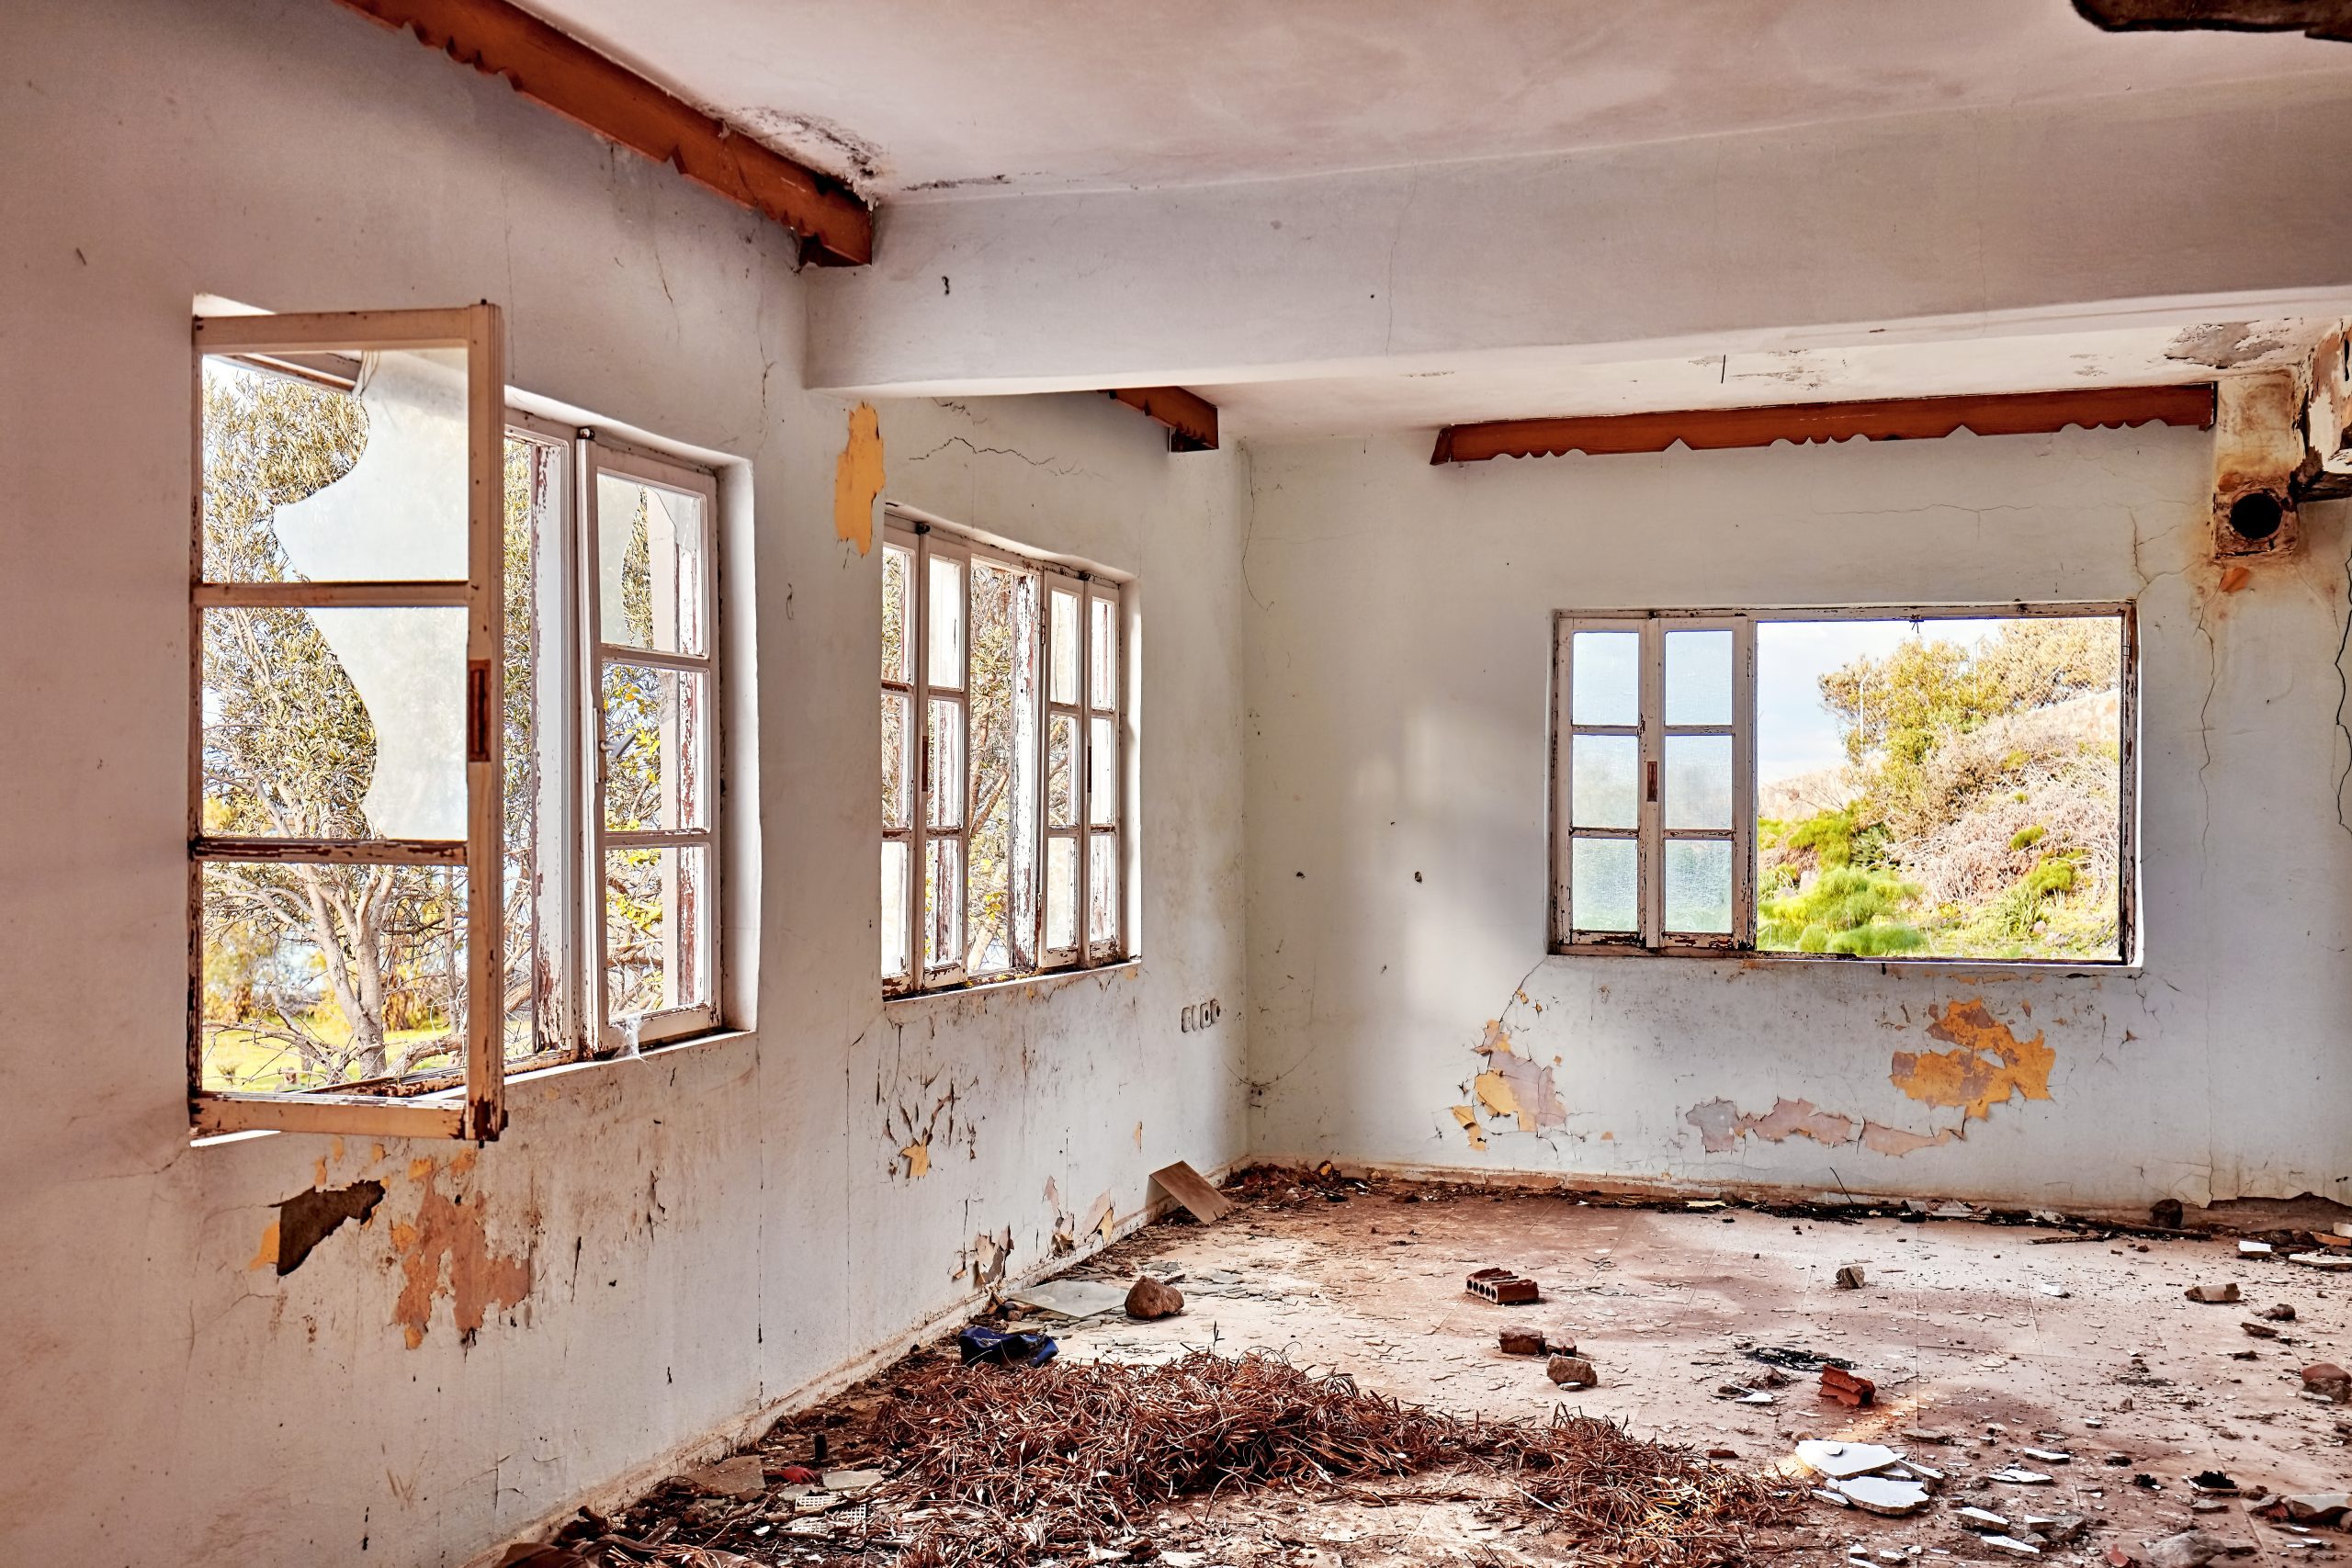 Can You Sue a Tenant for Damage to the Property After they Leave?